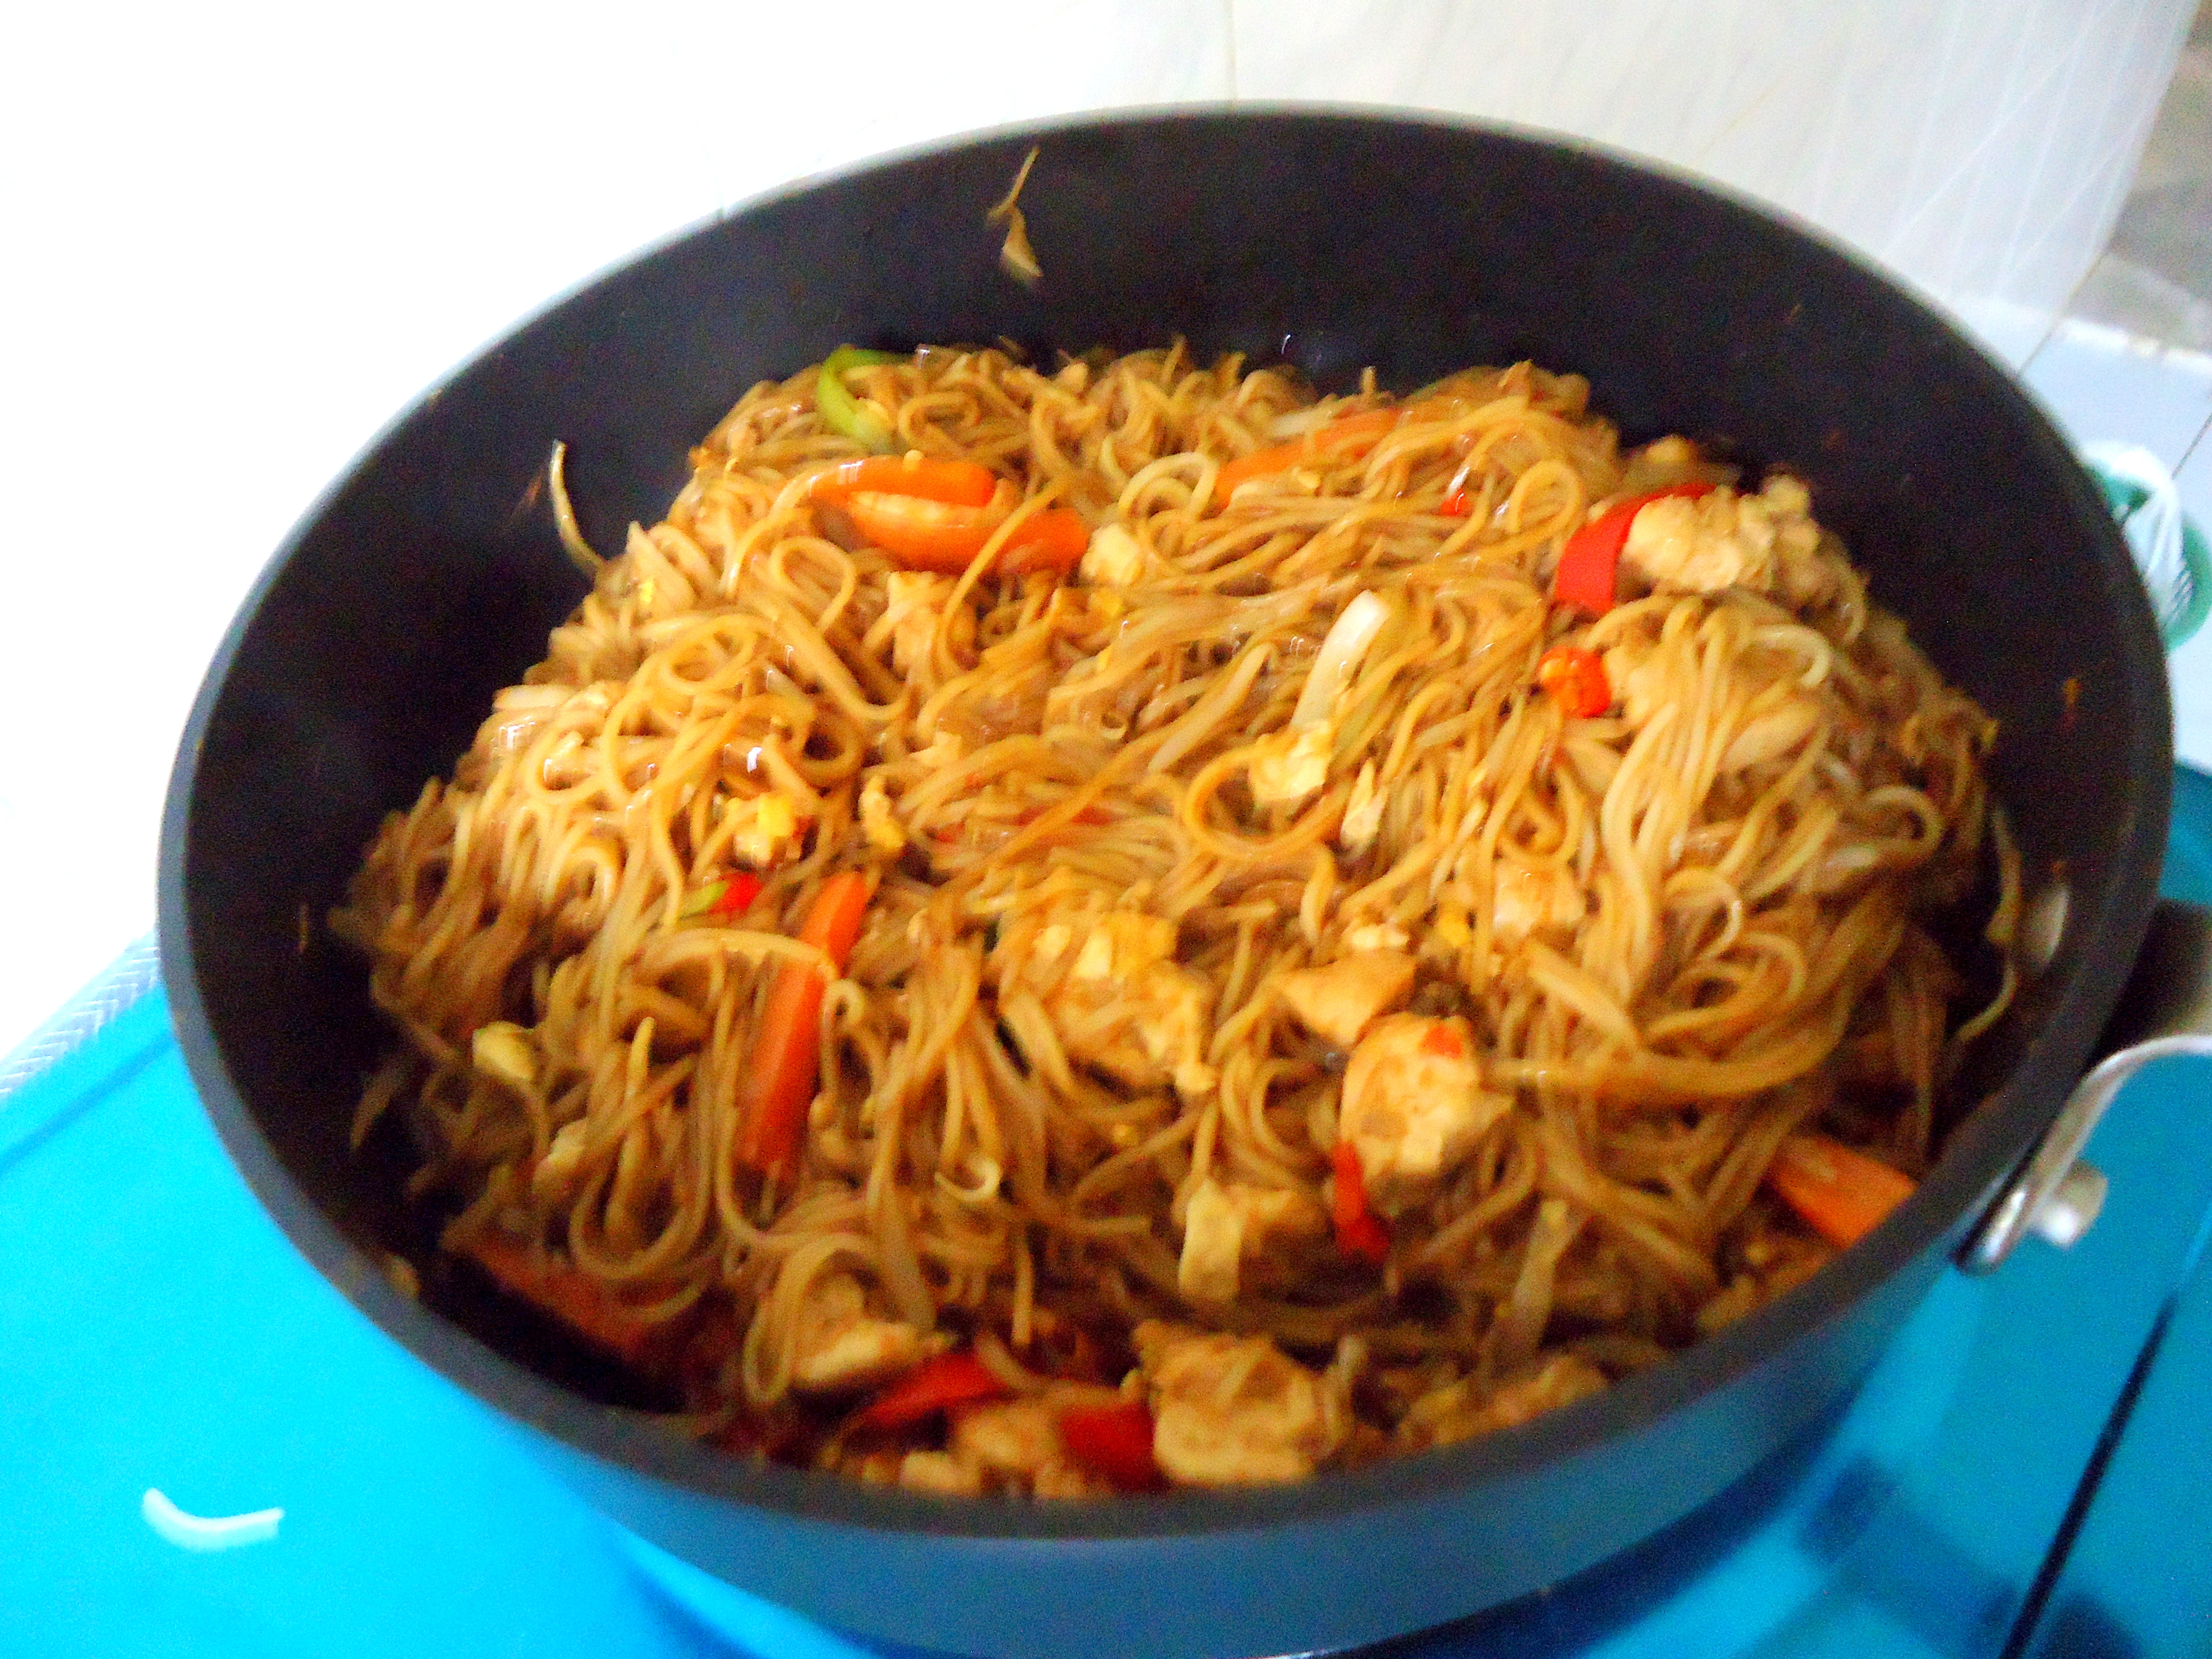 Authentic Malaysian Cuisine: Ayam Mee Goreng (Spicy Chicken Noodles) – Chattering Kitchen